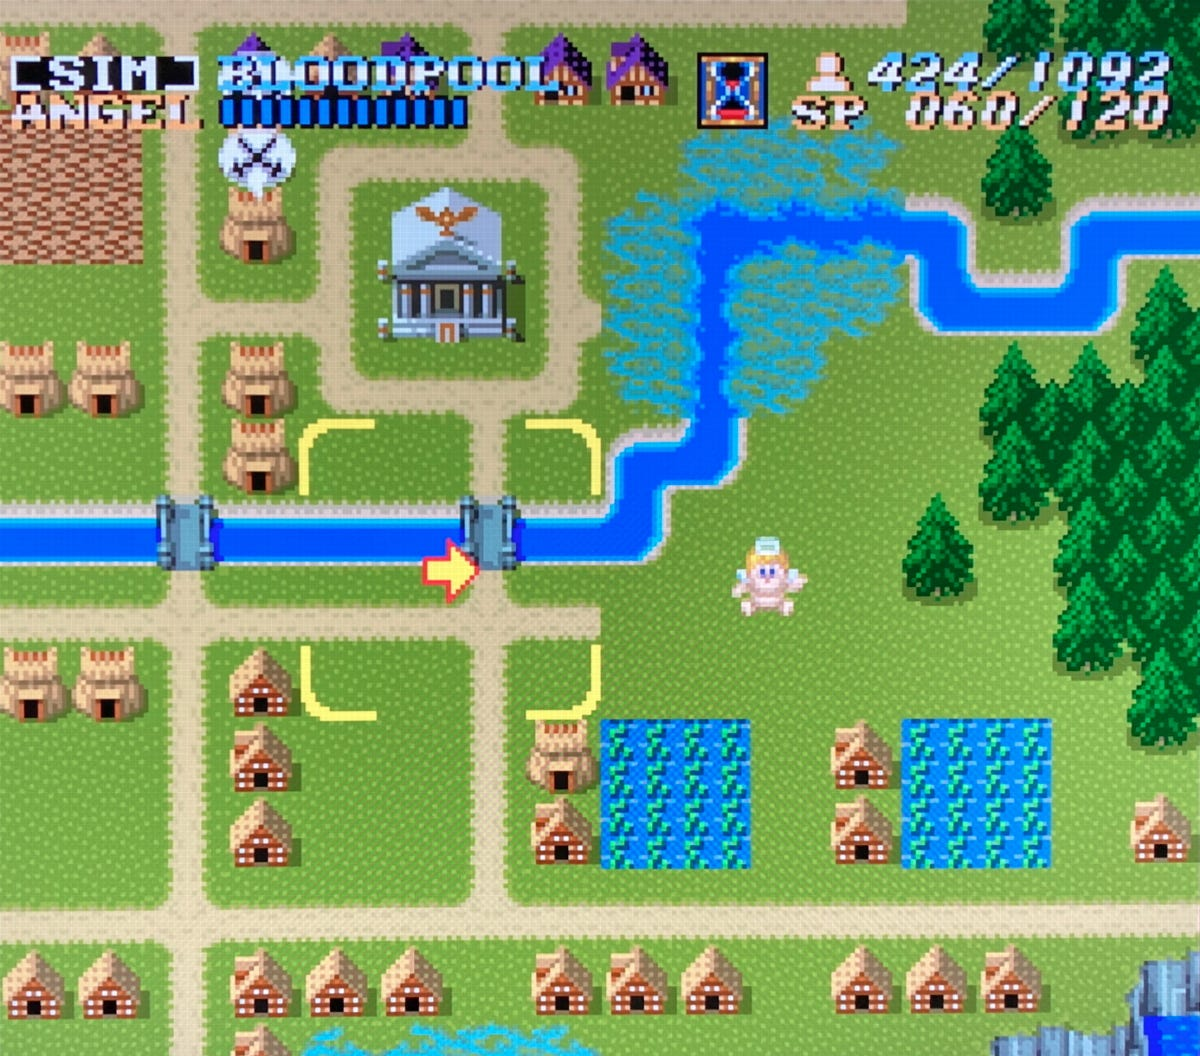 A view of Bloodpool during the god-sim portion of the SNES original.